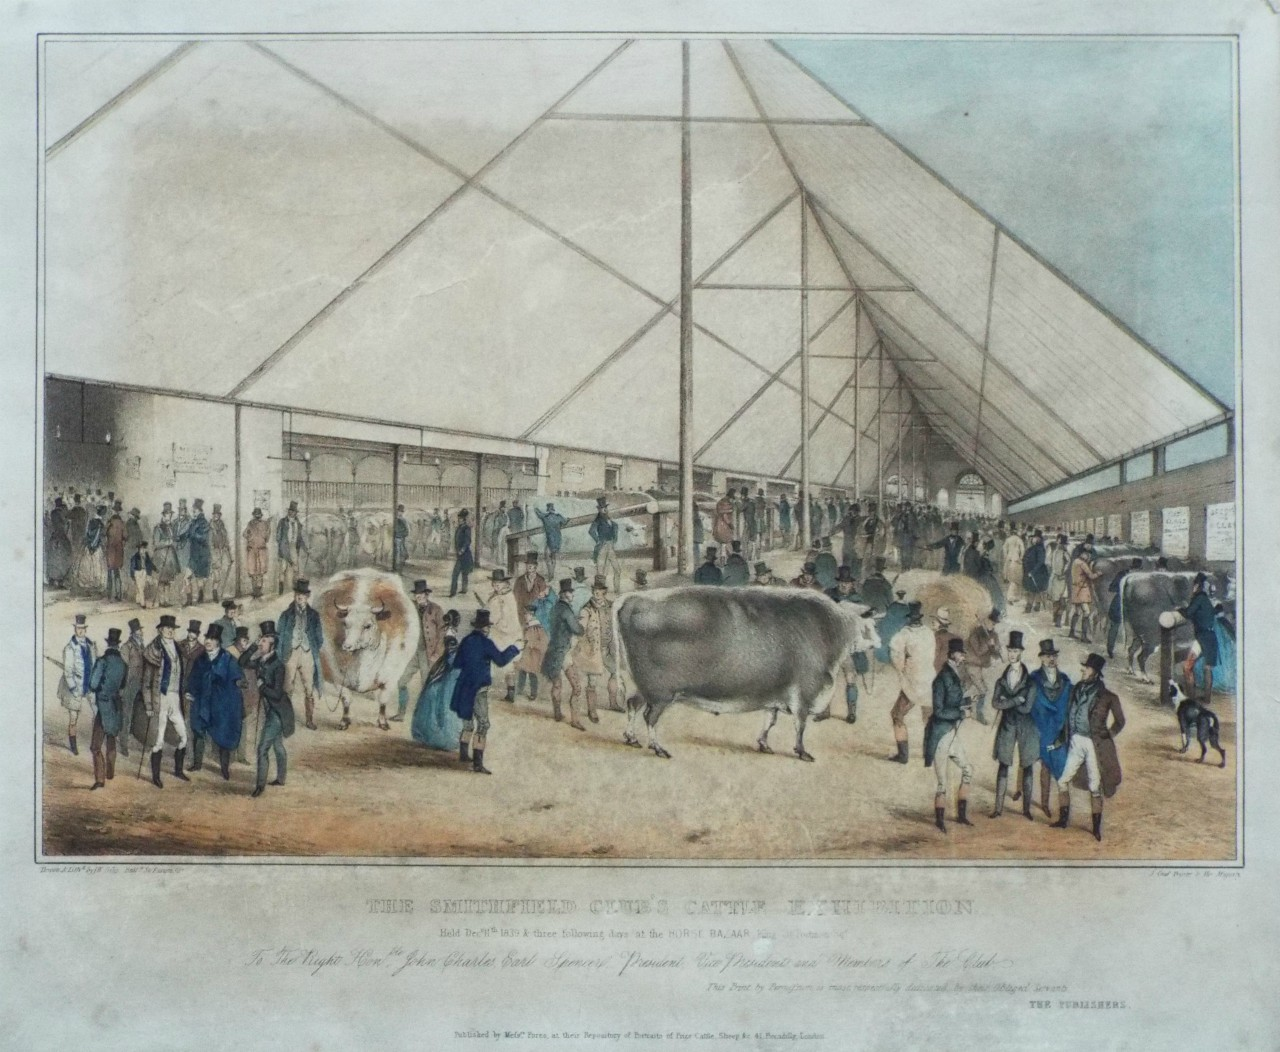 Lithograph - The Smithfeld Club's Cattle Exhibition. Held Decr. 11th 1839 & three following days at the Horse Bazaar, King St. Portman Sqr. - Giles